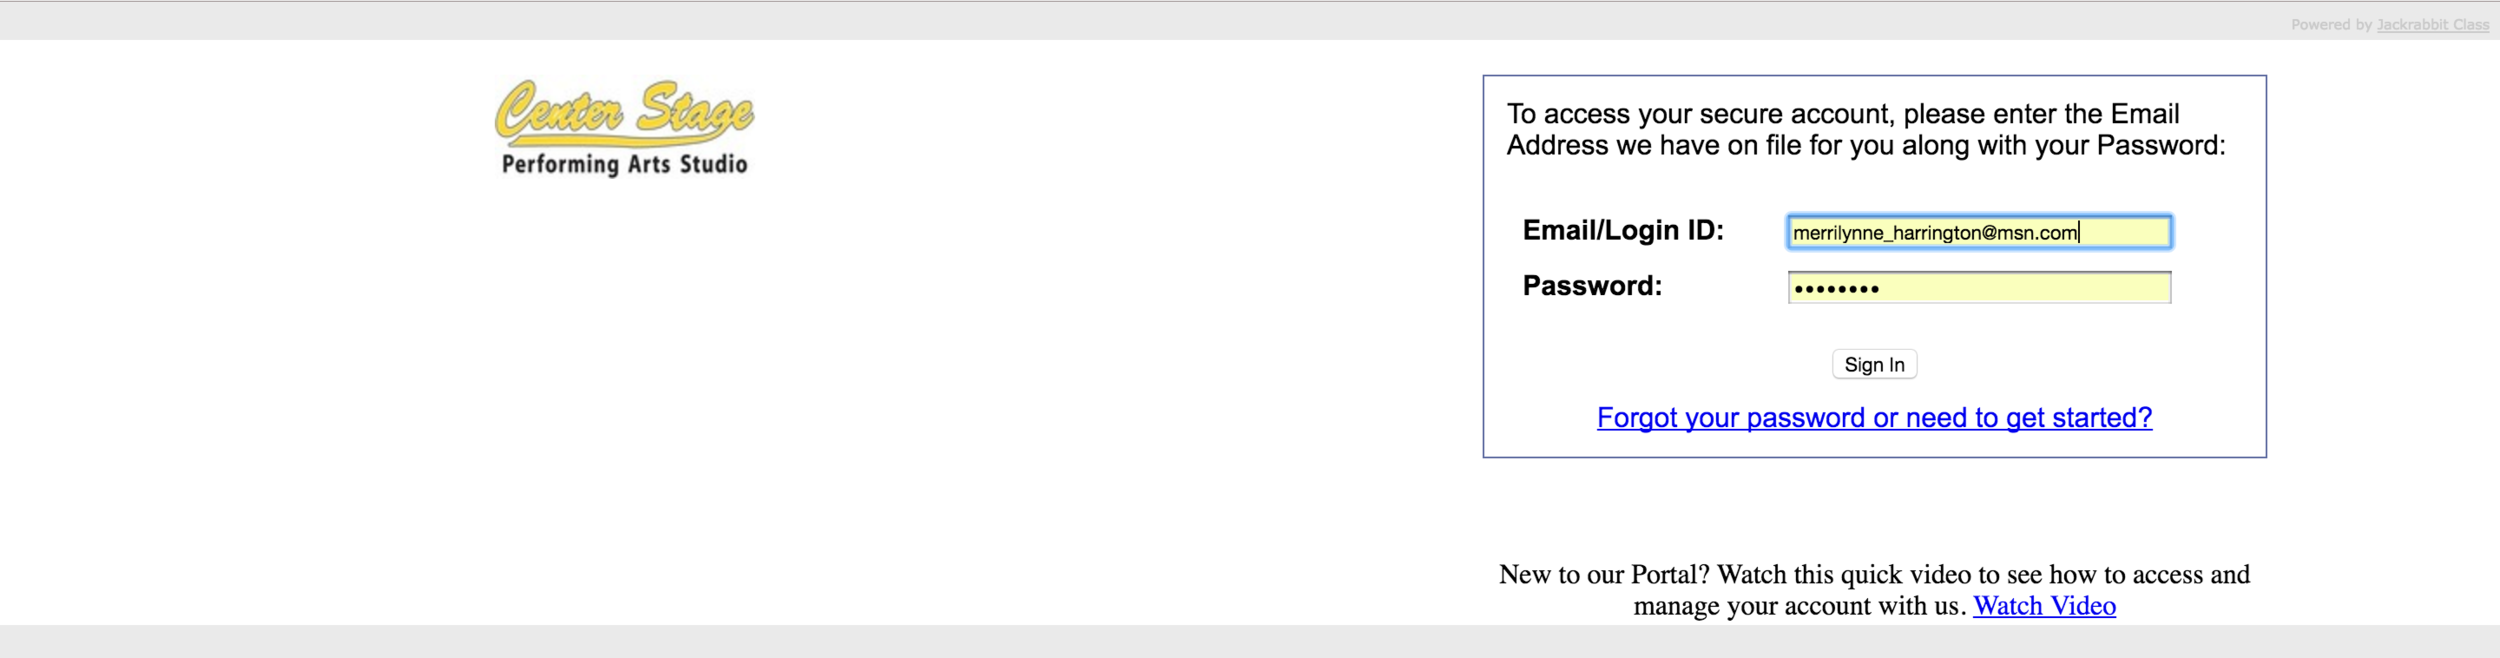 Step 5. return to the parent payment portal to enter your email address and password.